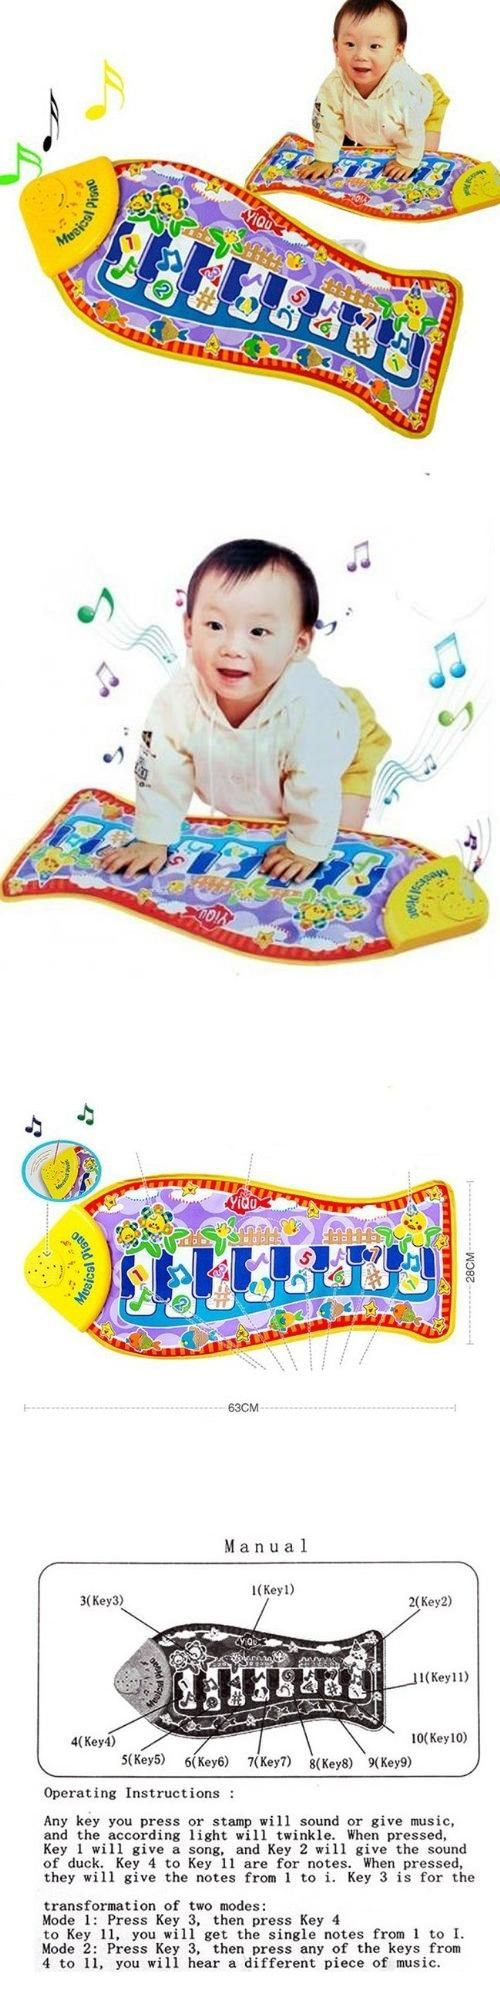 Baby Child Fun Piano Music Cute Fish Animal Mat Touch Kick Play Toys Colour: Colorful. Main material: plastic+cloth. Asian Size: 640x290x23mm. Package Includes: 1pcs.  #Baby_Toys #Art_and_Craft_Supply